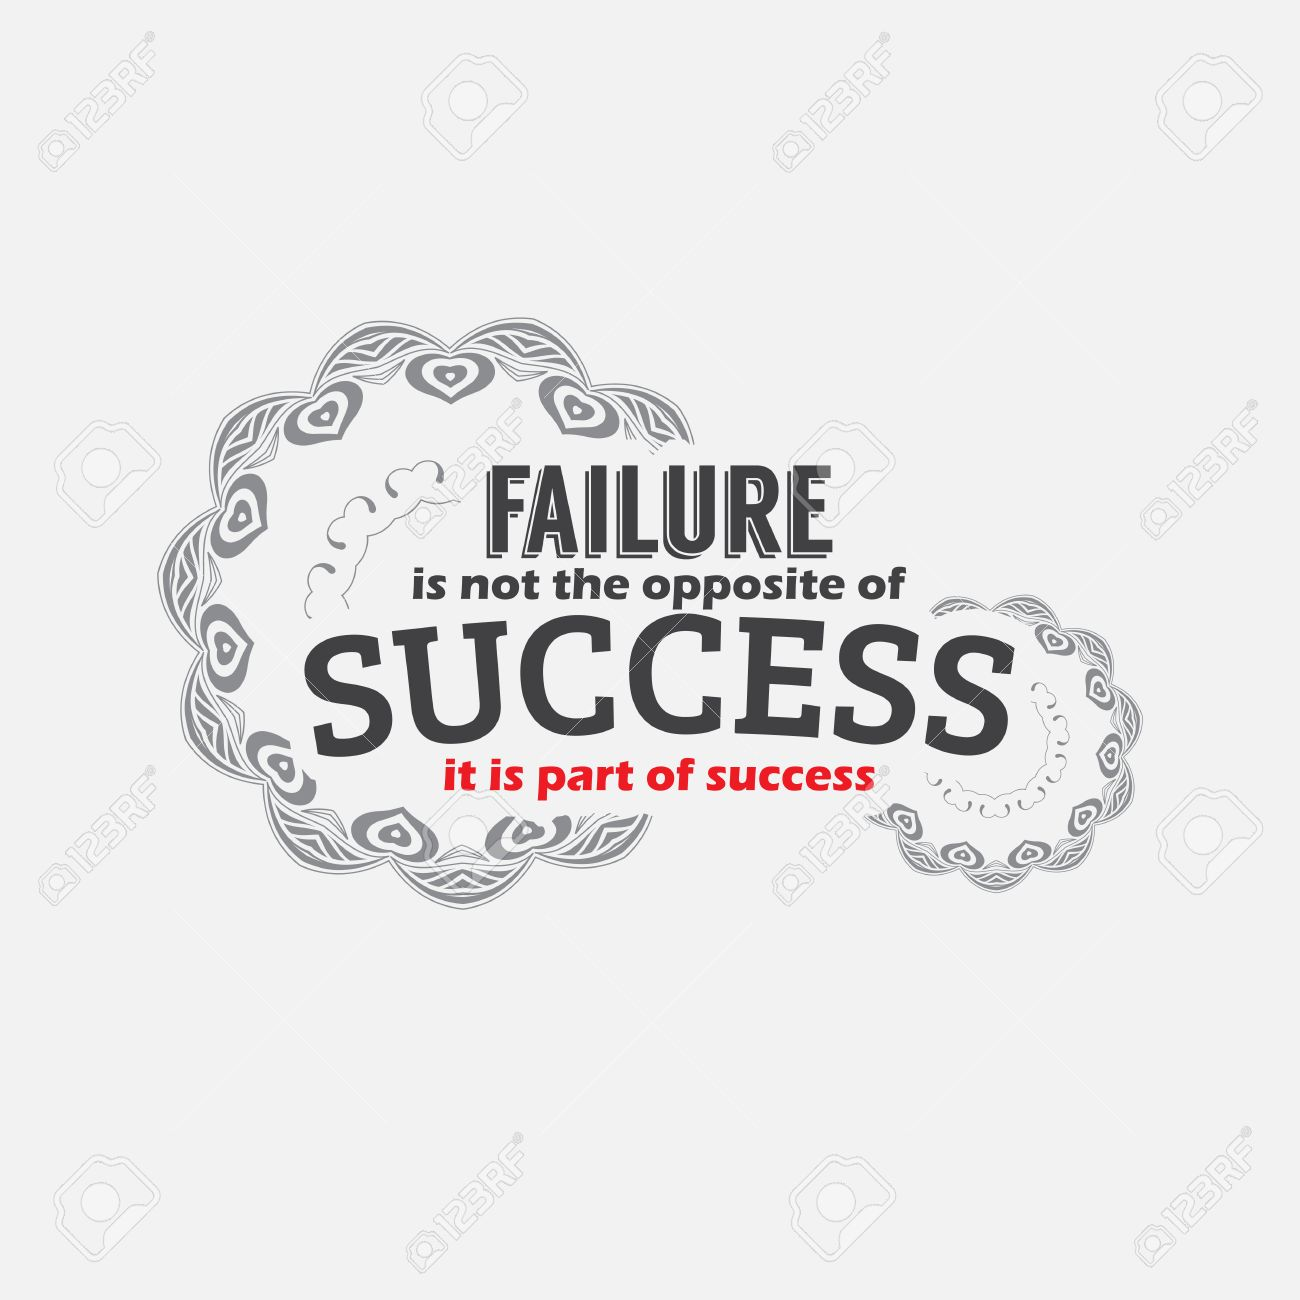 39187965-failure-is-not-the-opposite-of-success-it-is-part-of-success-motivational-poster-minimalist-backgrou.jpg